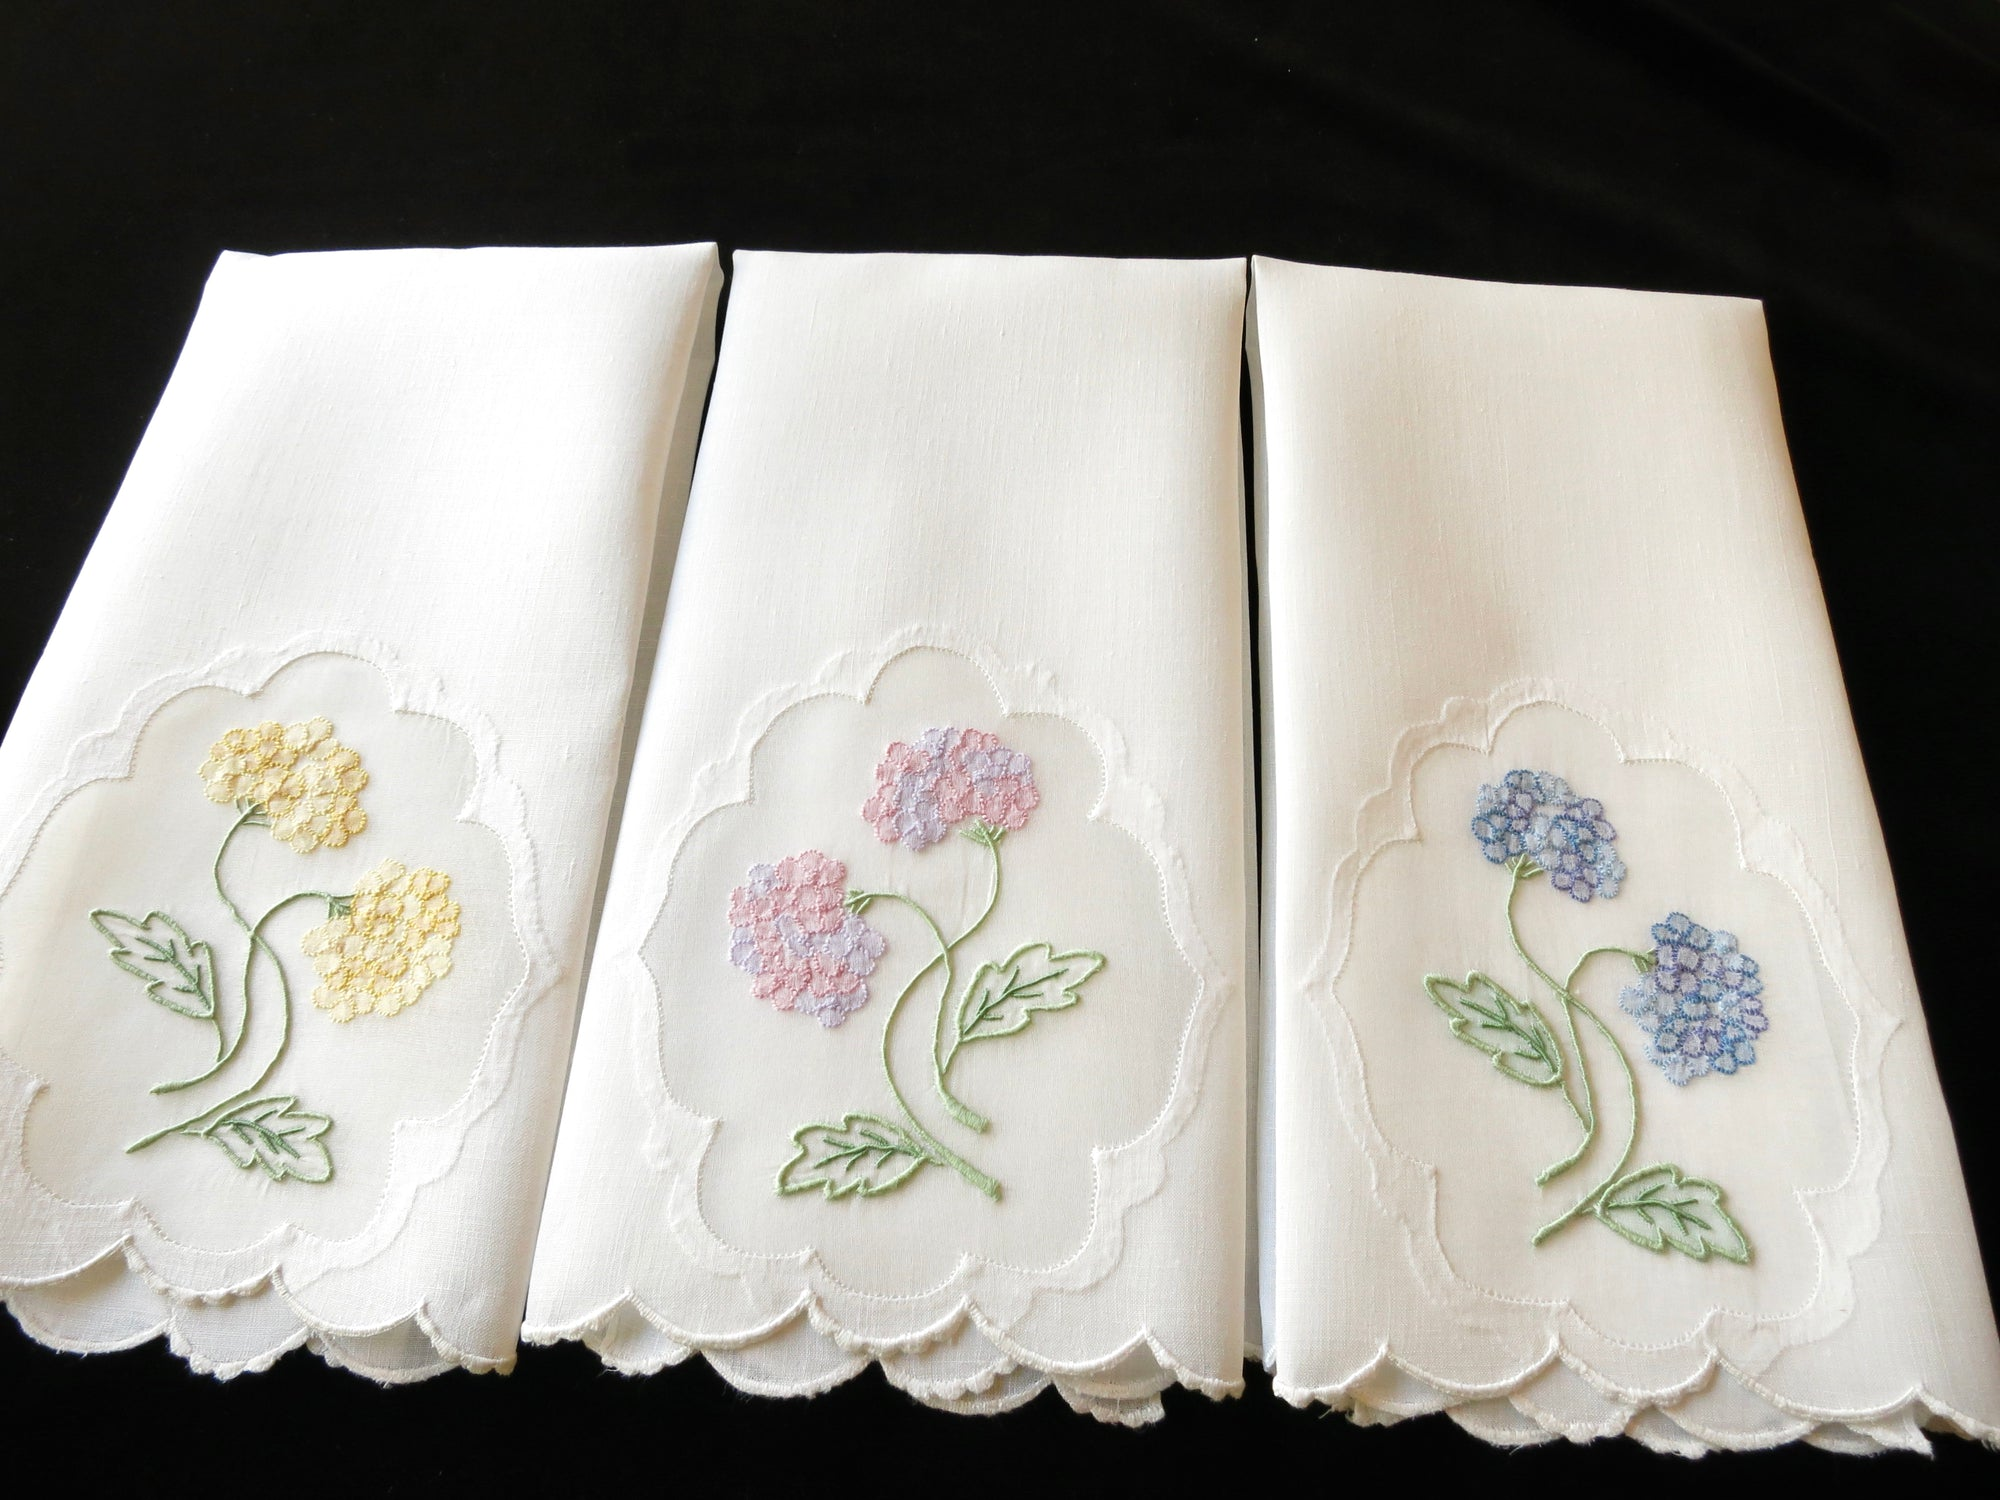 Colorful Hydrangeas Vintage Madeira Embroidery Guest Towels - Set of 3